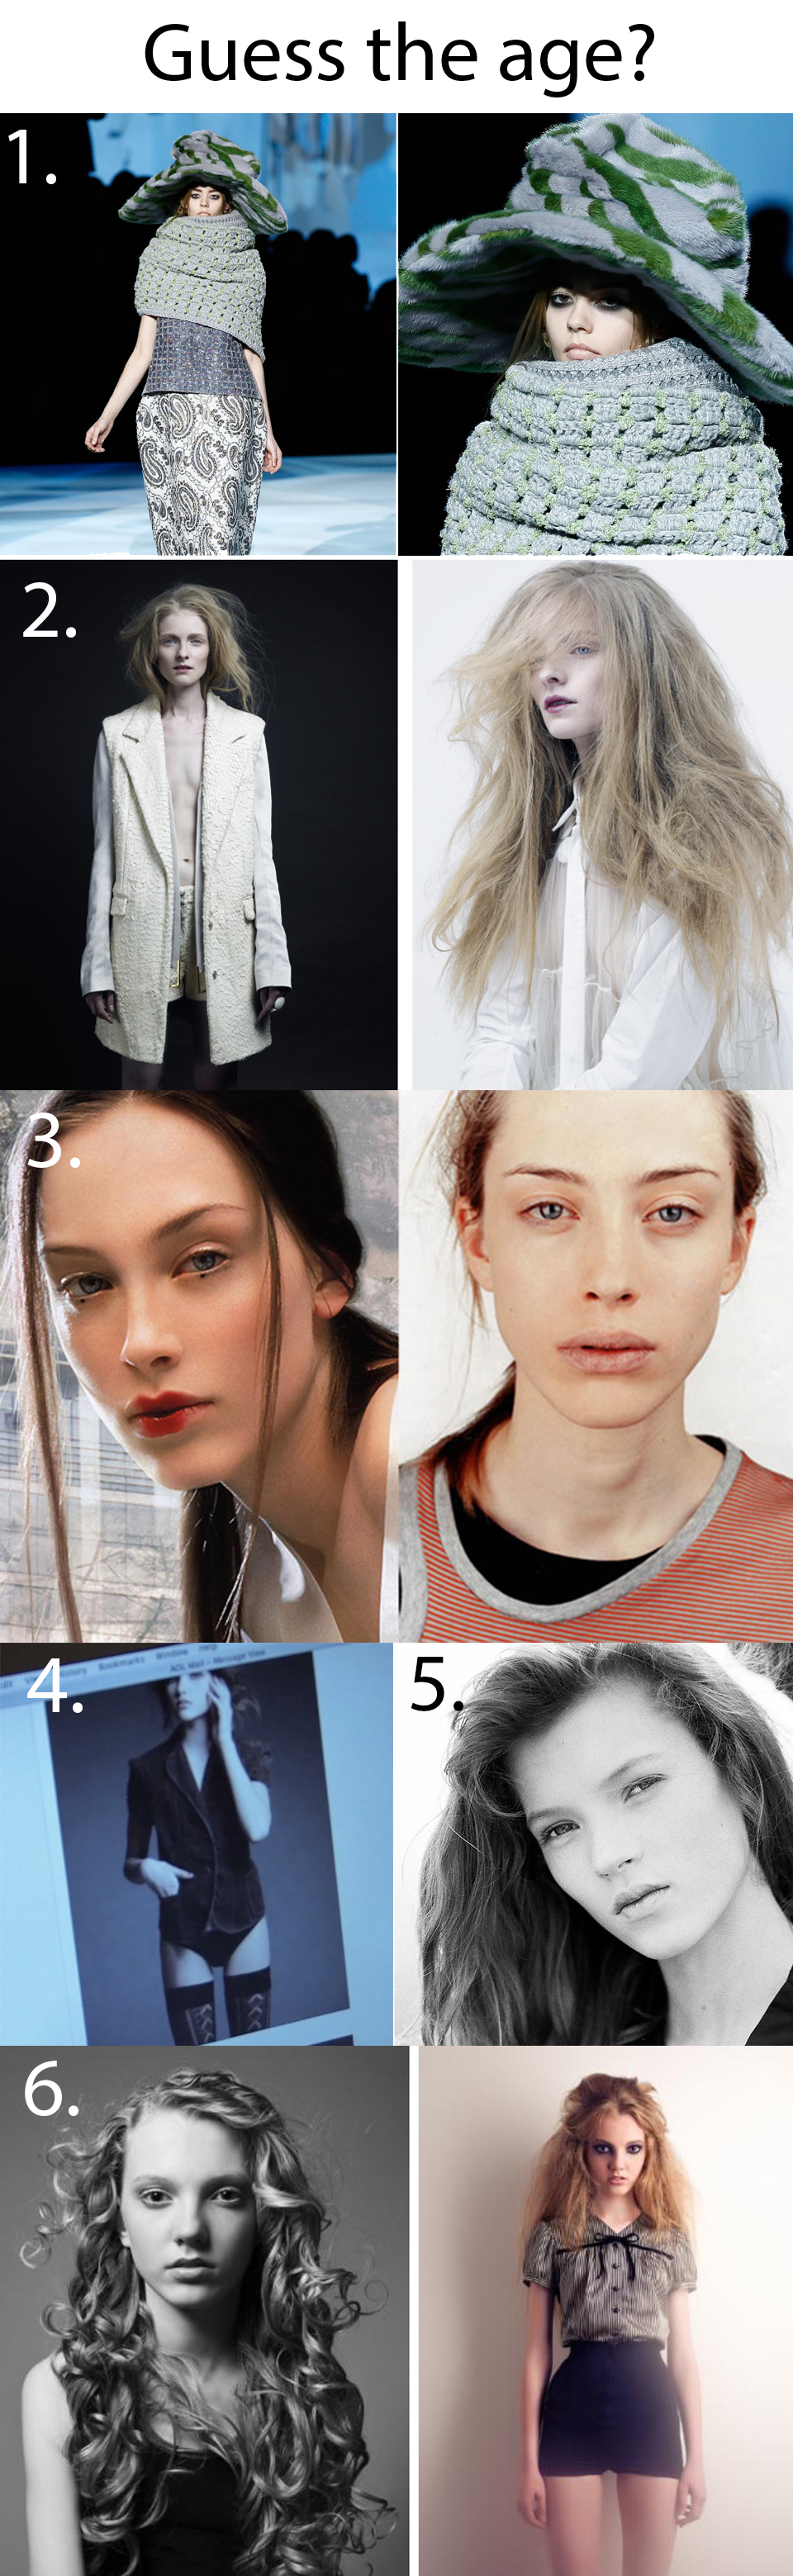 Guess the age of the models